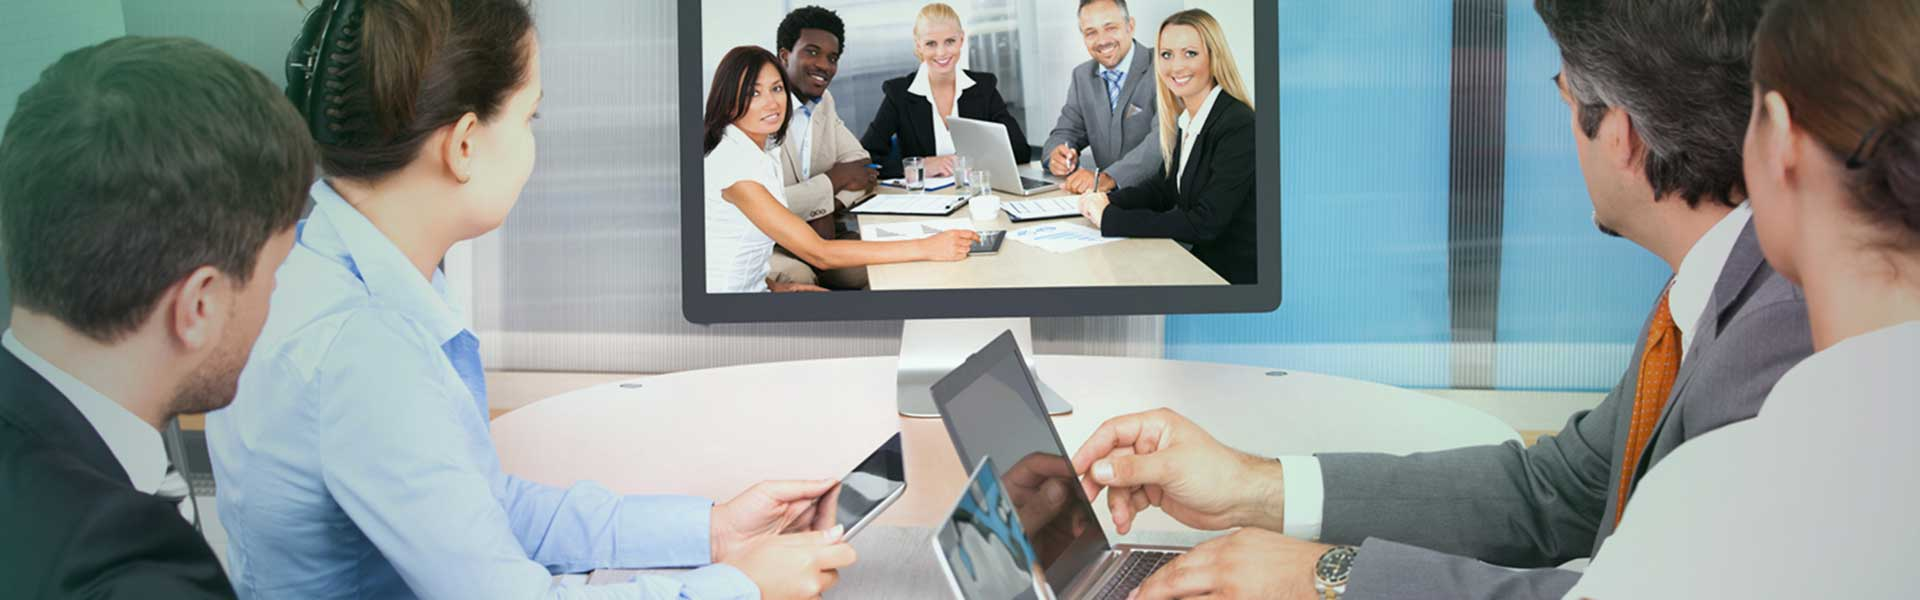 Advantages-Of-Using-Internet-Conferencing-on-PassionArticles